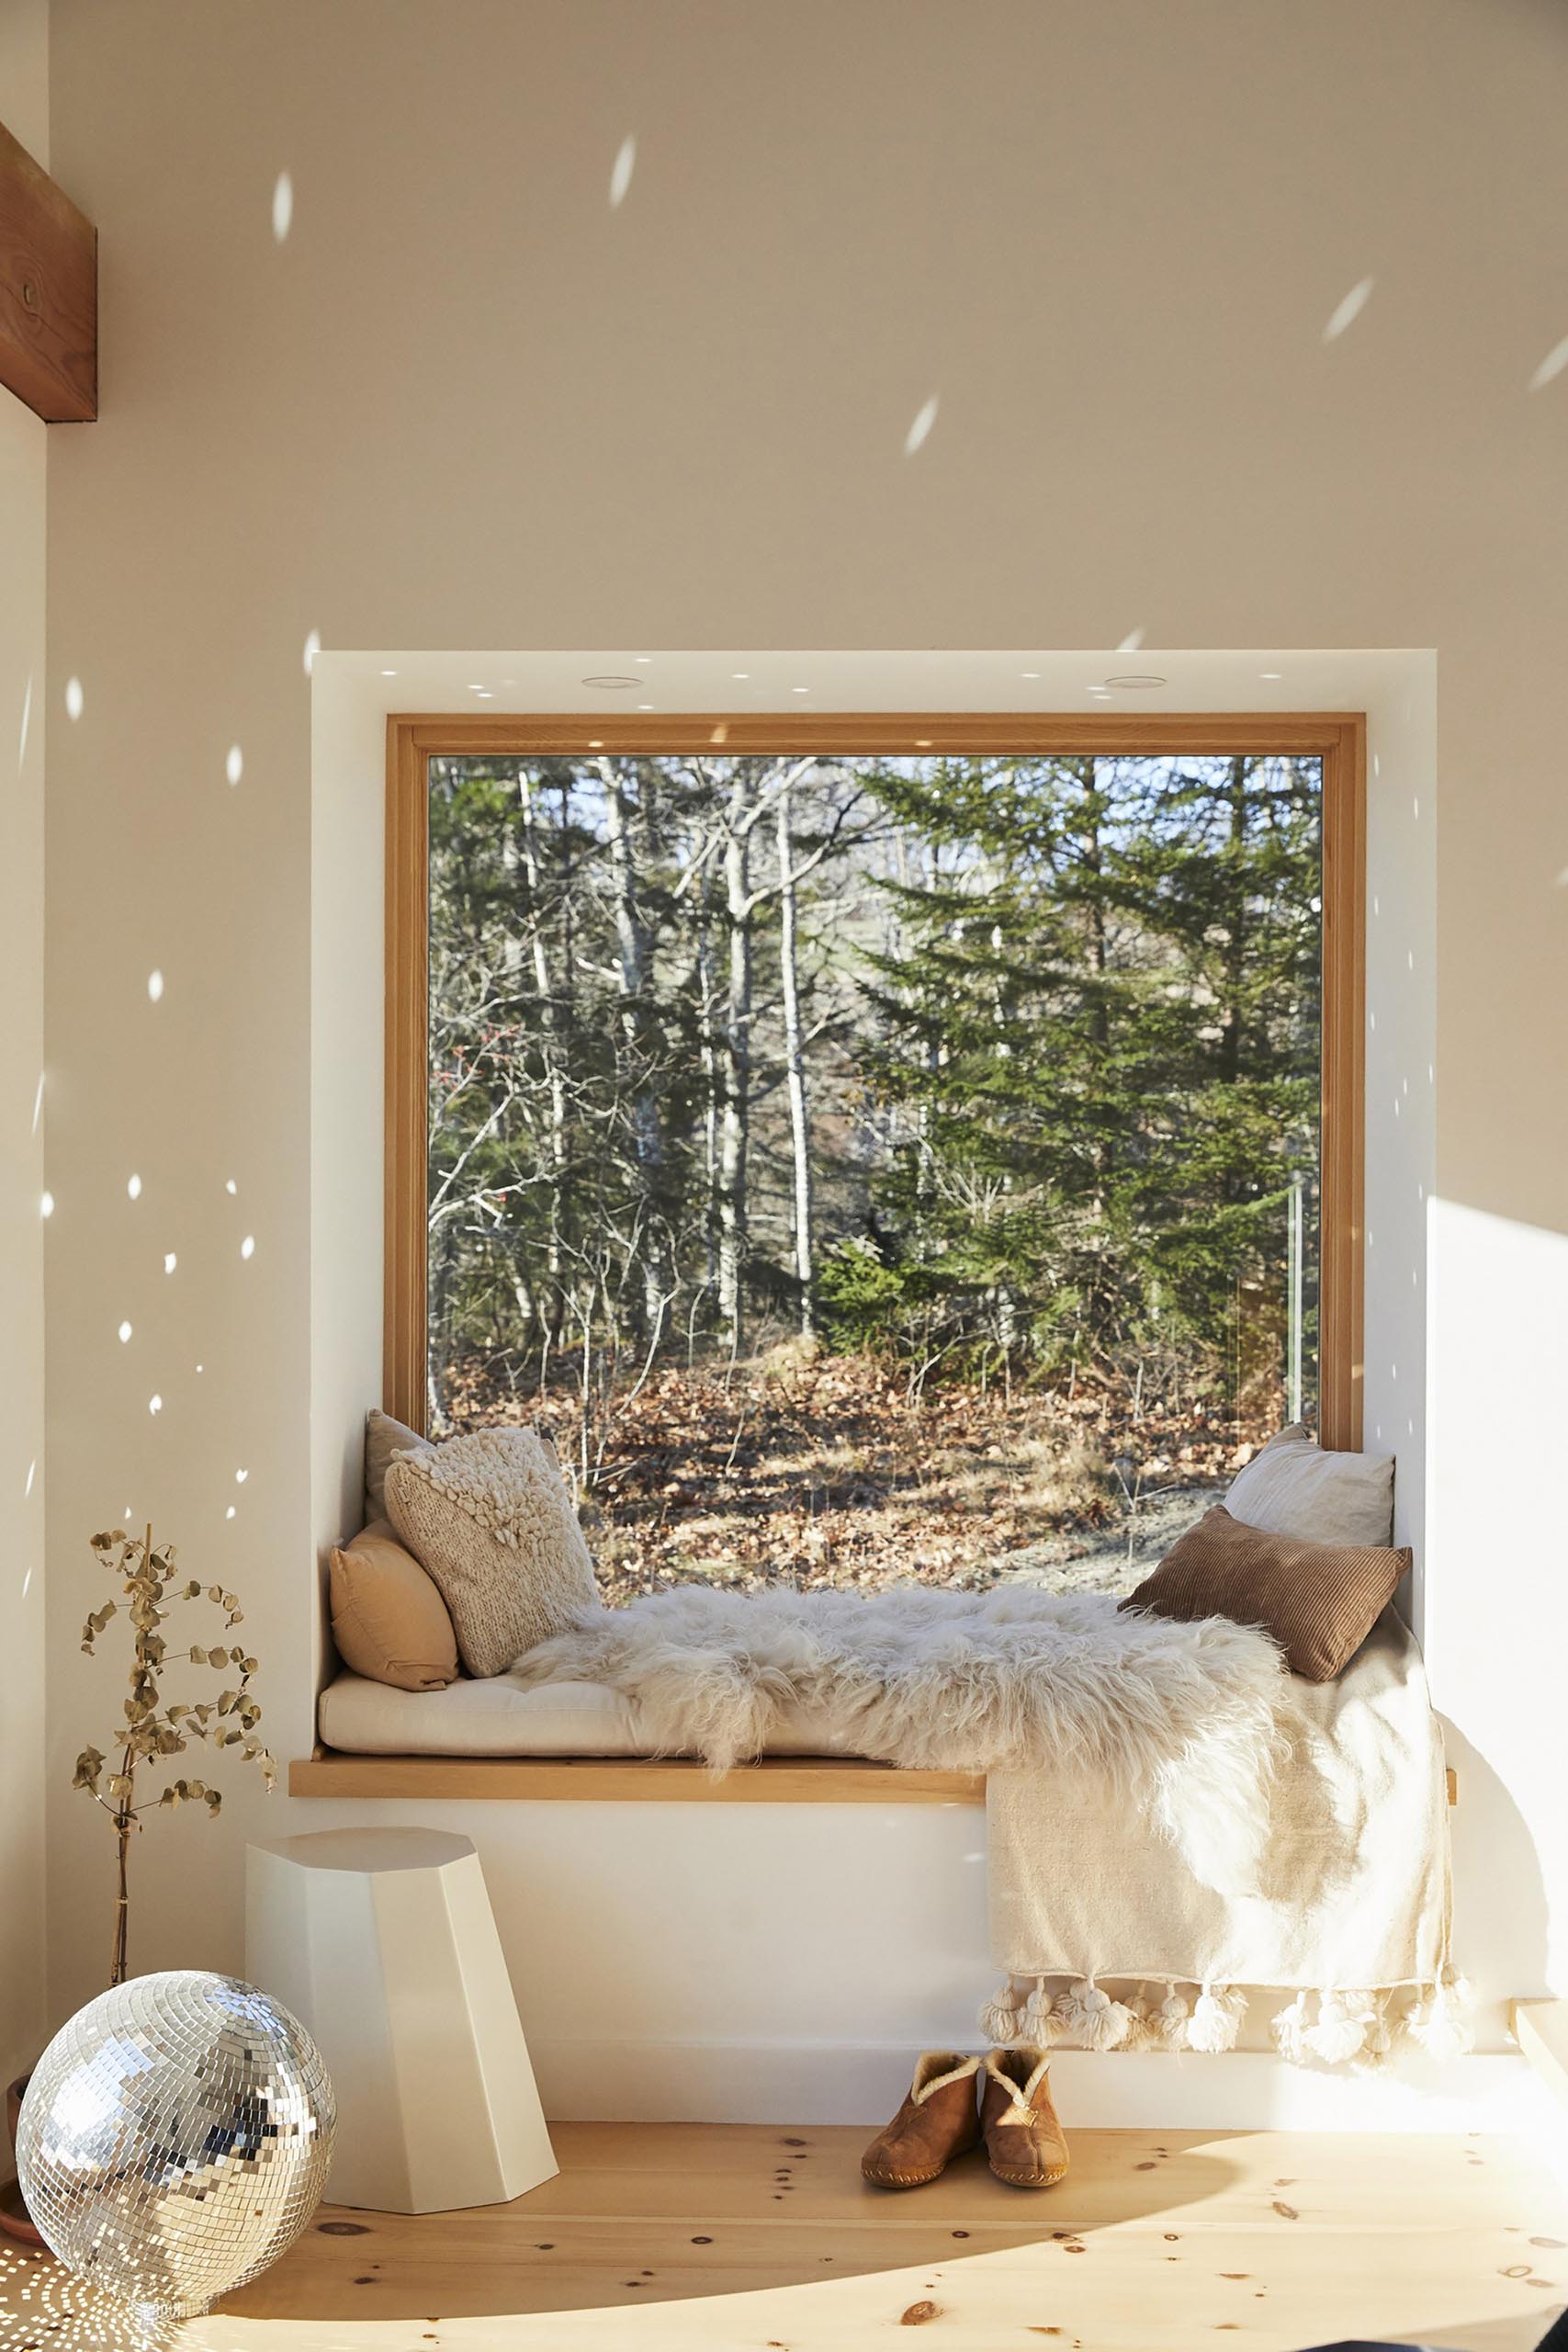 A cozy window seat with tree views, soft pillows and blankets, and a mirror ball that scatters light.